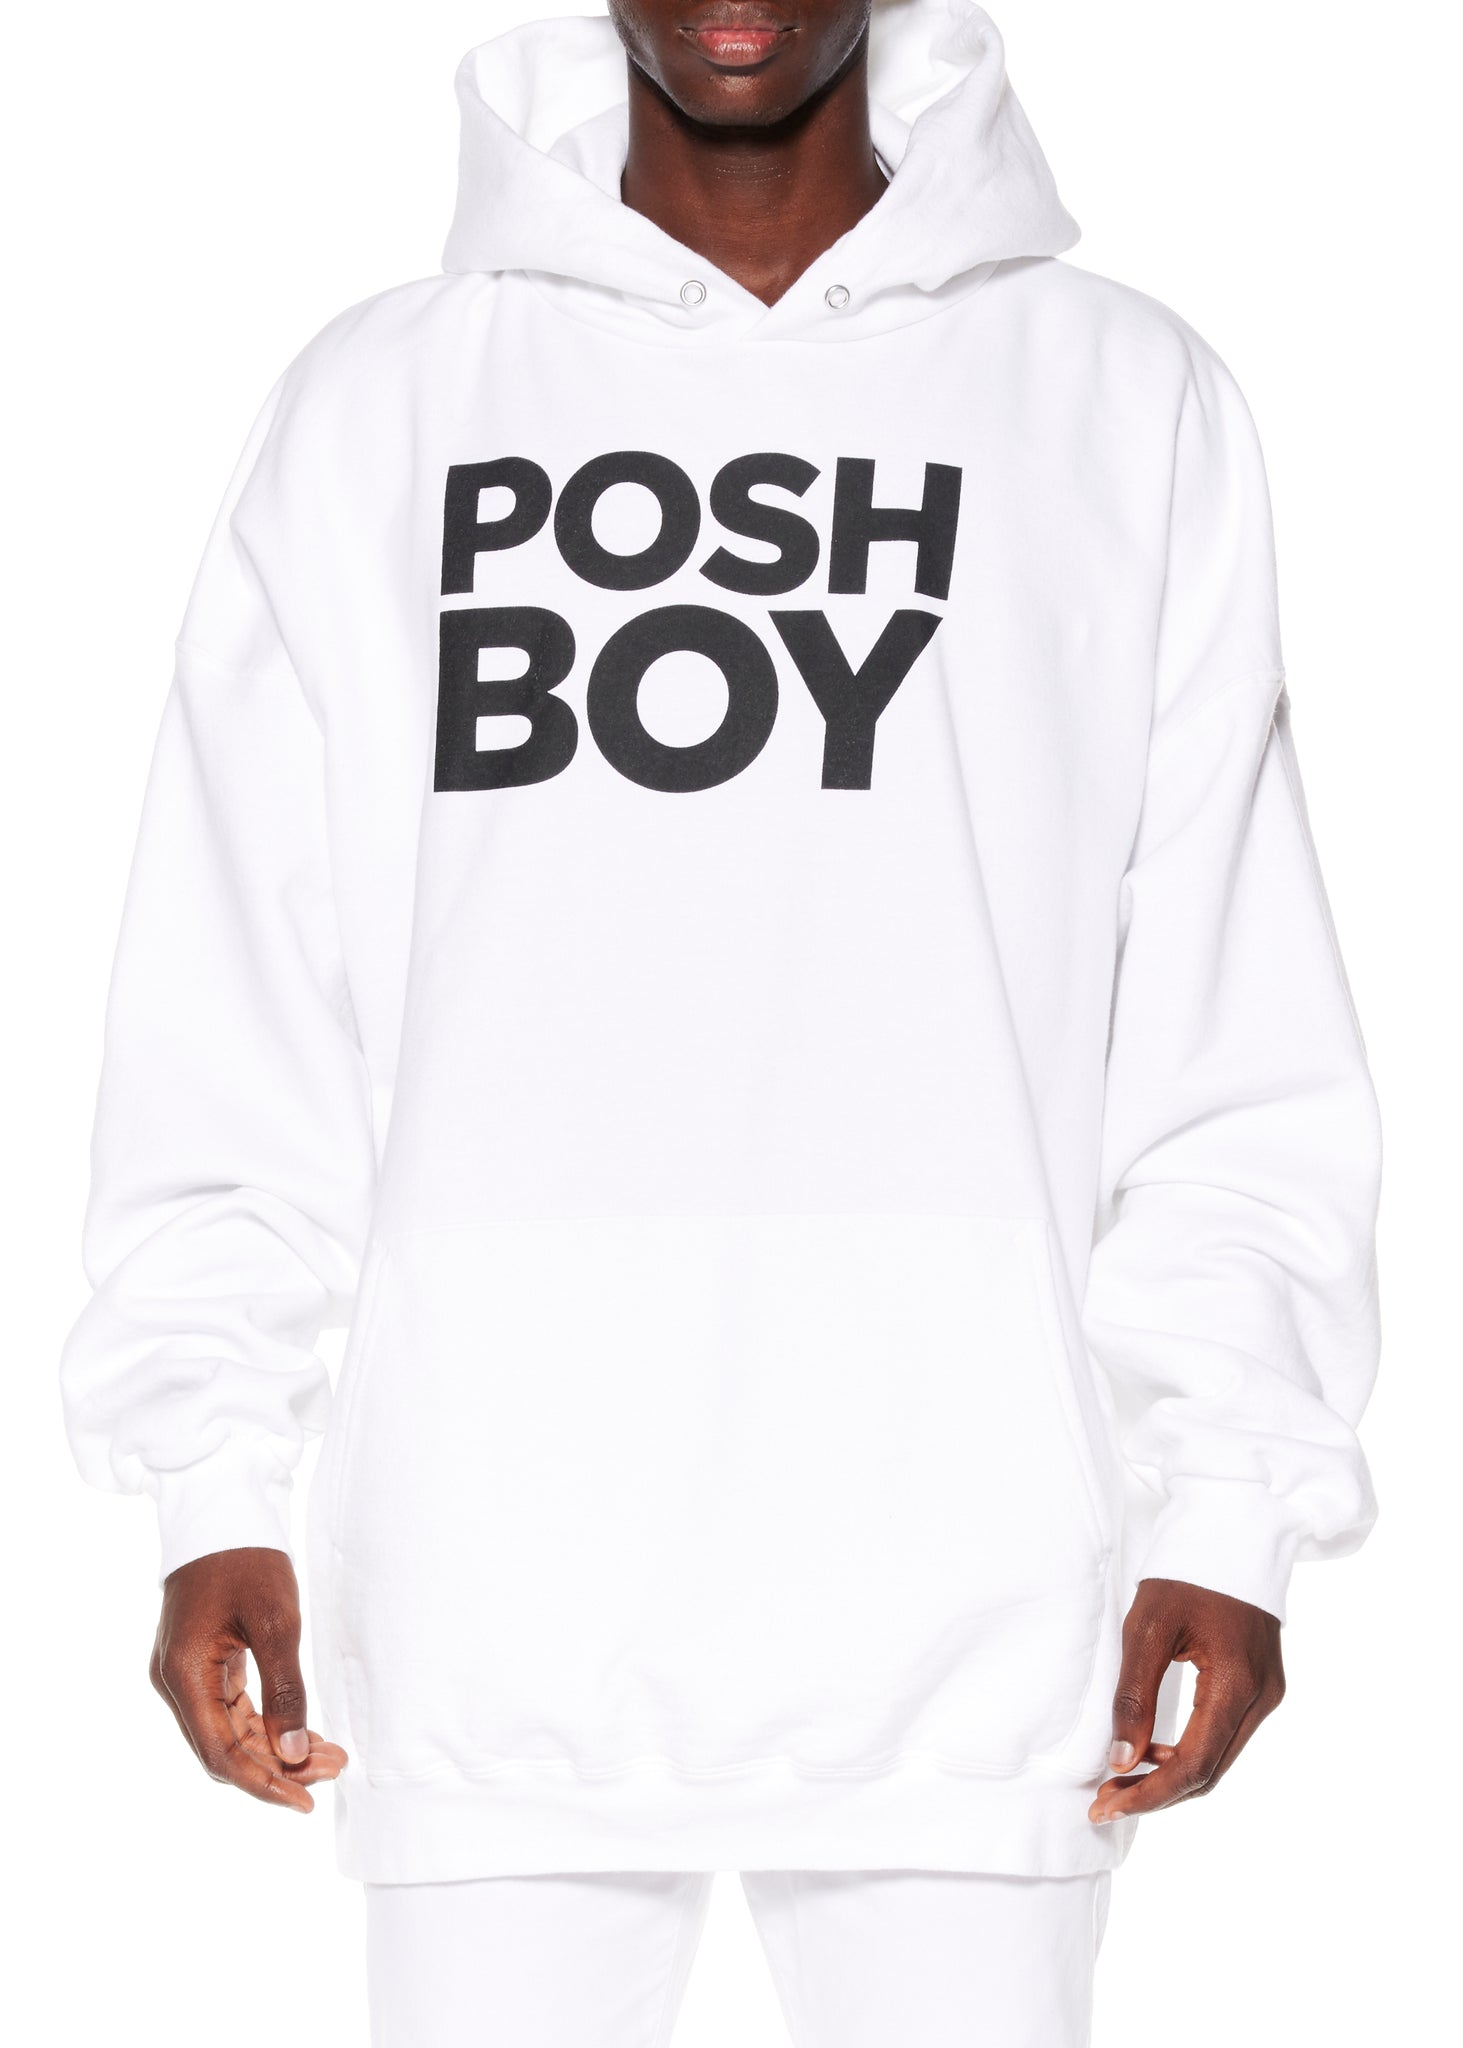 """POSH BOY"" HOODED SWEATSHIRT - Men's Tops - Libertine"